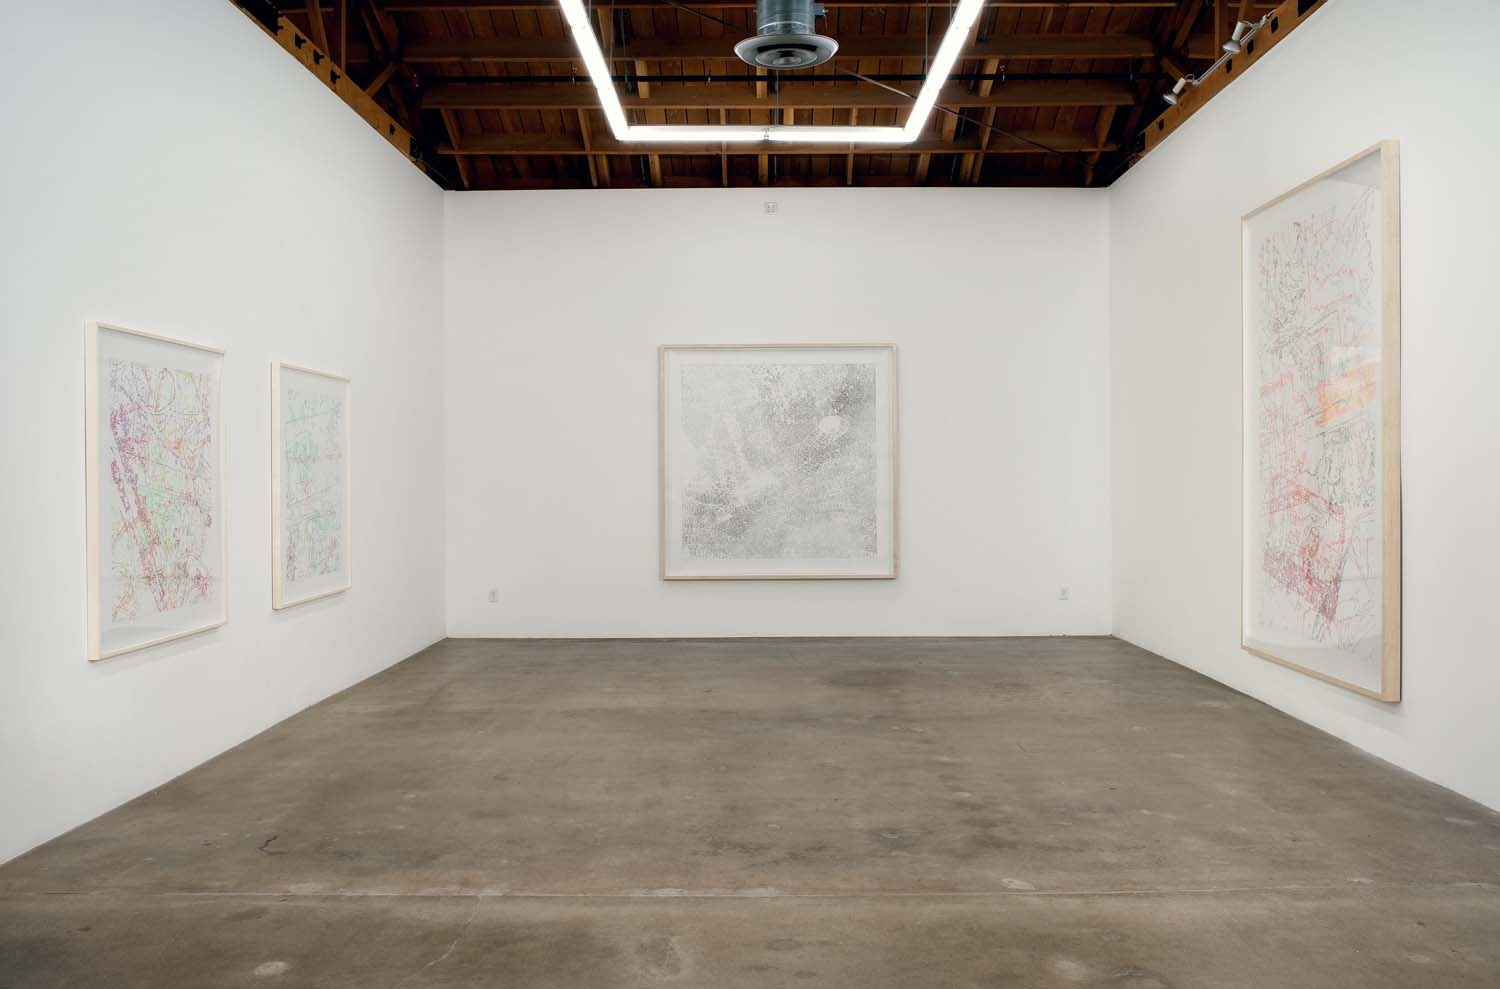 """""""From the LA River to Lackawanna,"""" Susanne Vielmetter Los Angeles Projects, Los Angeles, CA, 2012"""